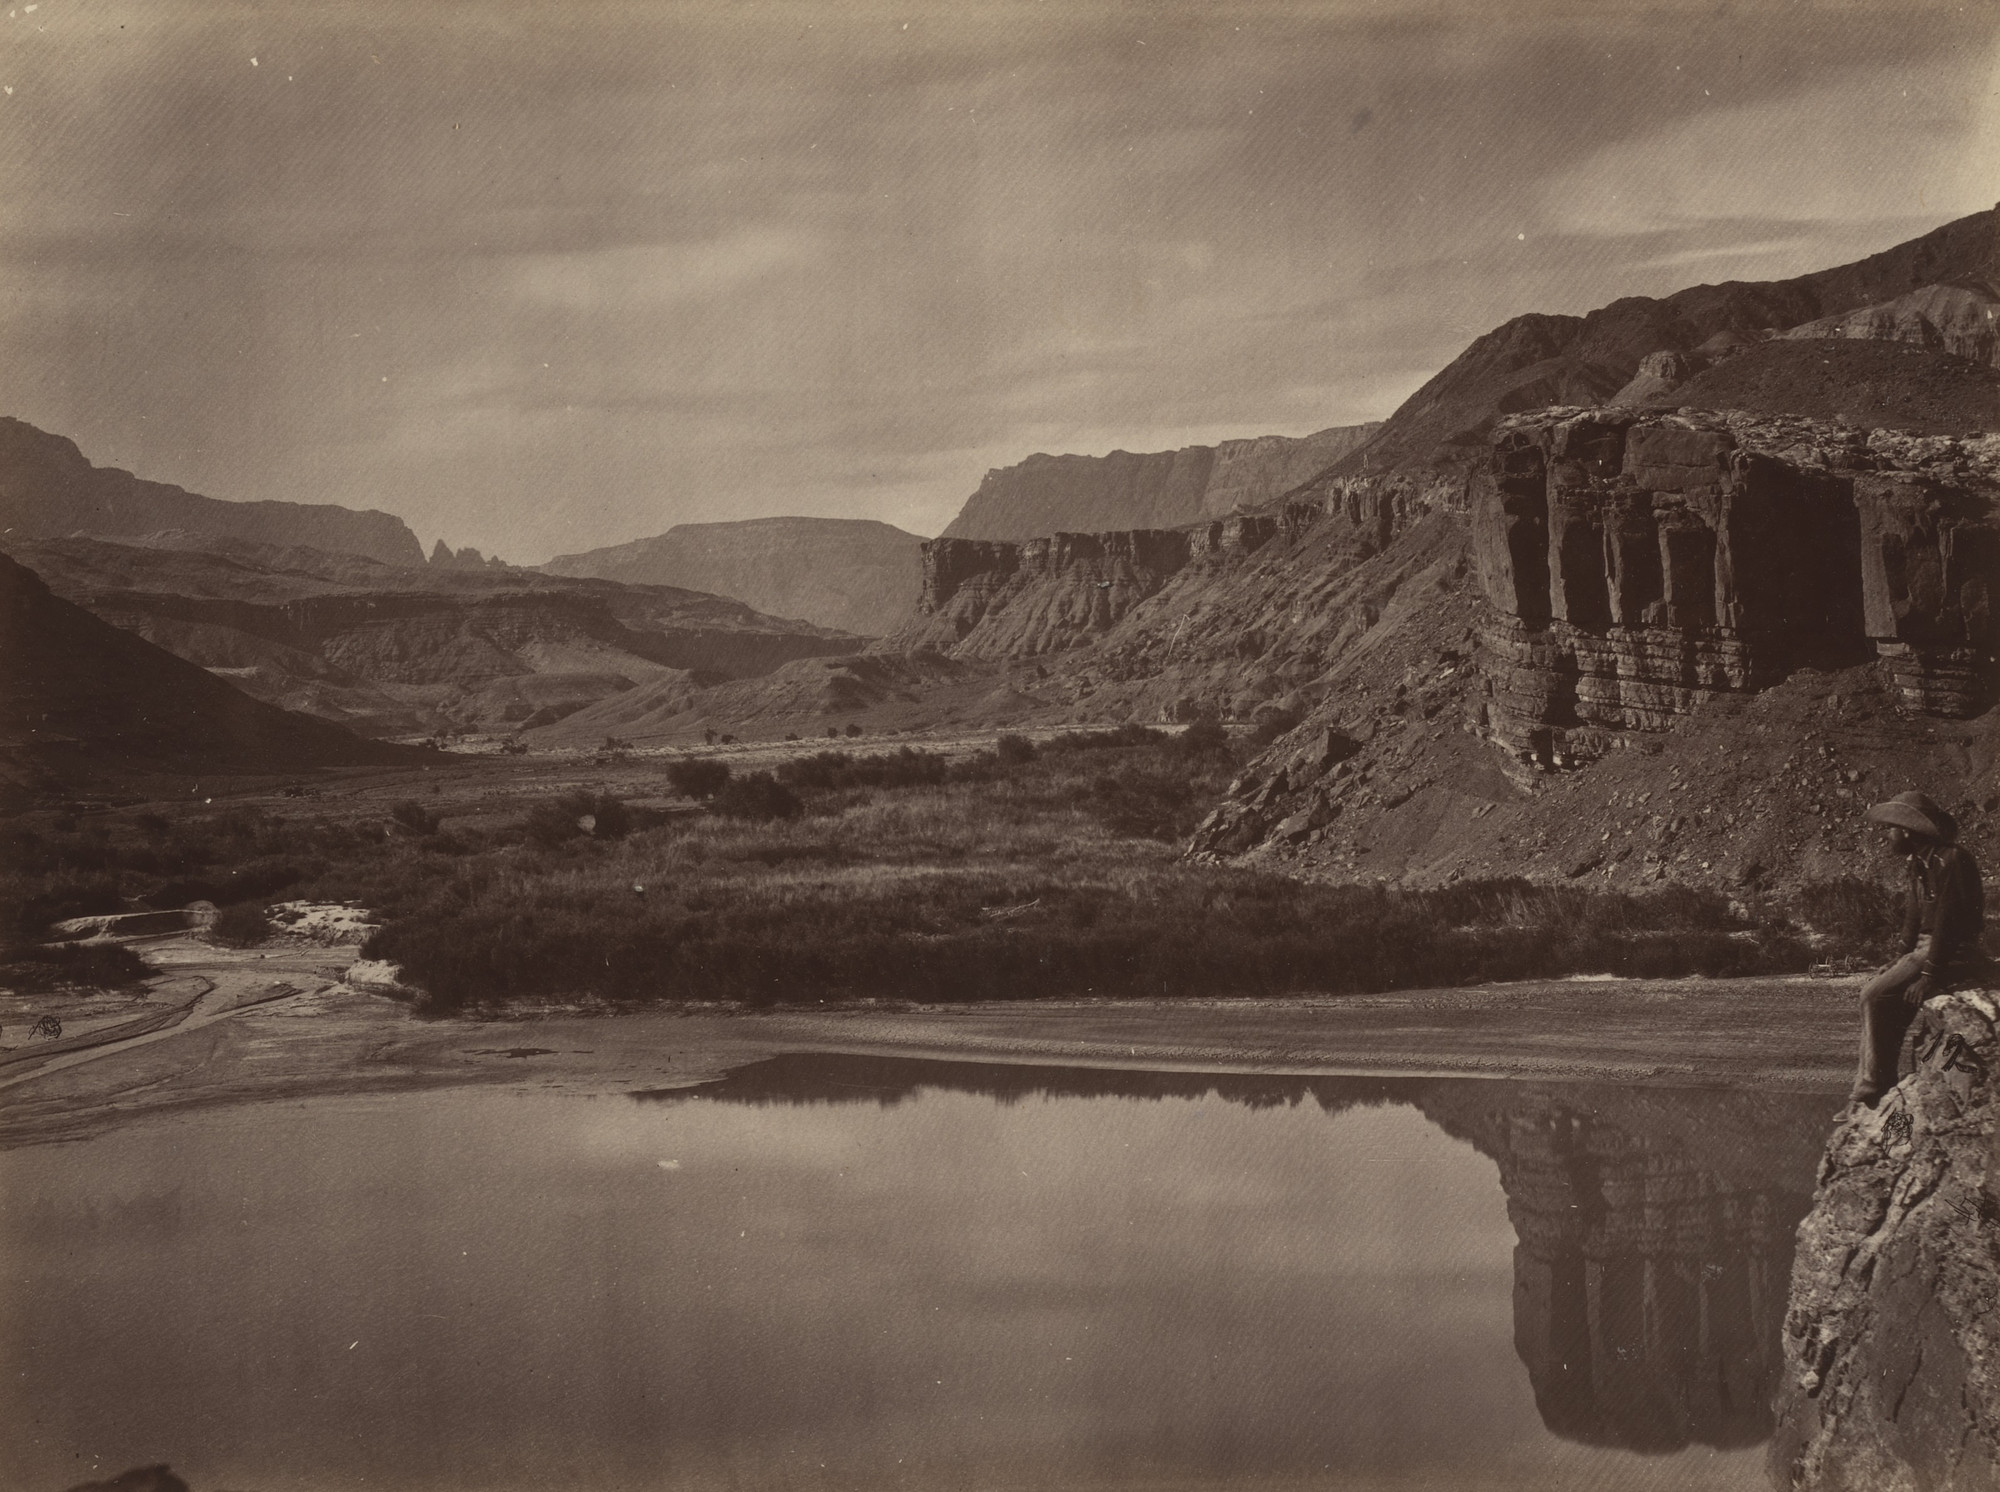 Timothy O'Sullivan. Looking Across the Colorado River to Mouth of Paria Creek. Seasons of 1871, 1872 and 1873